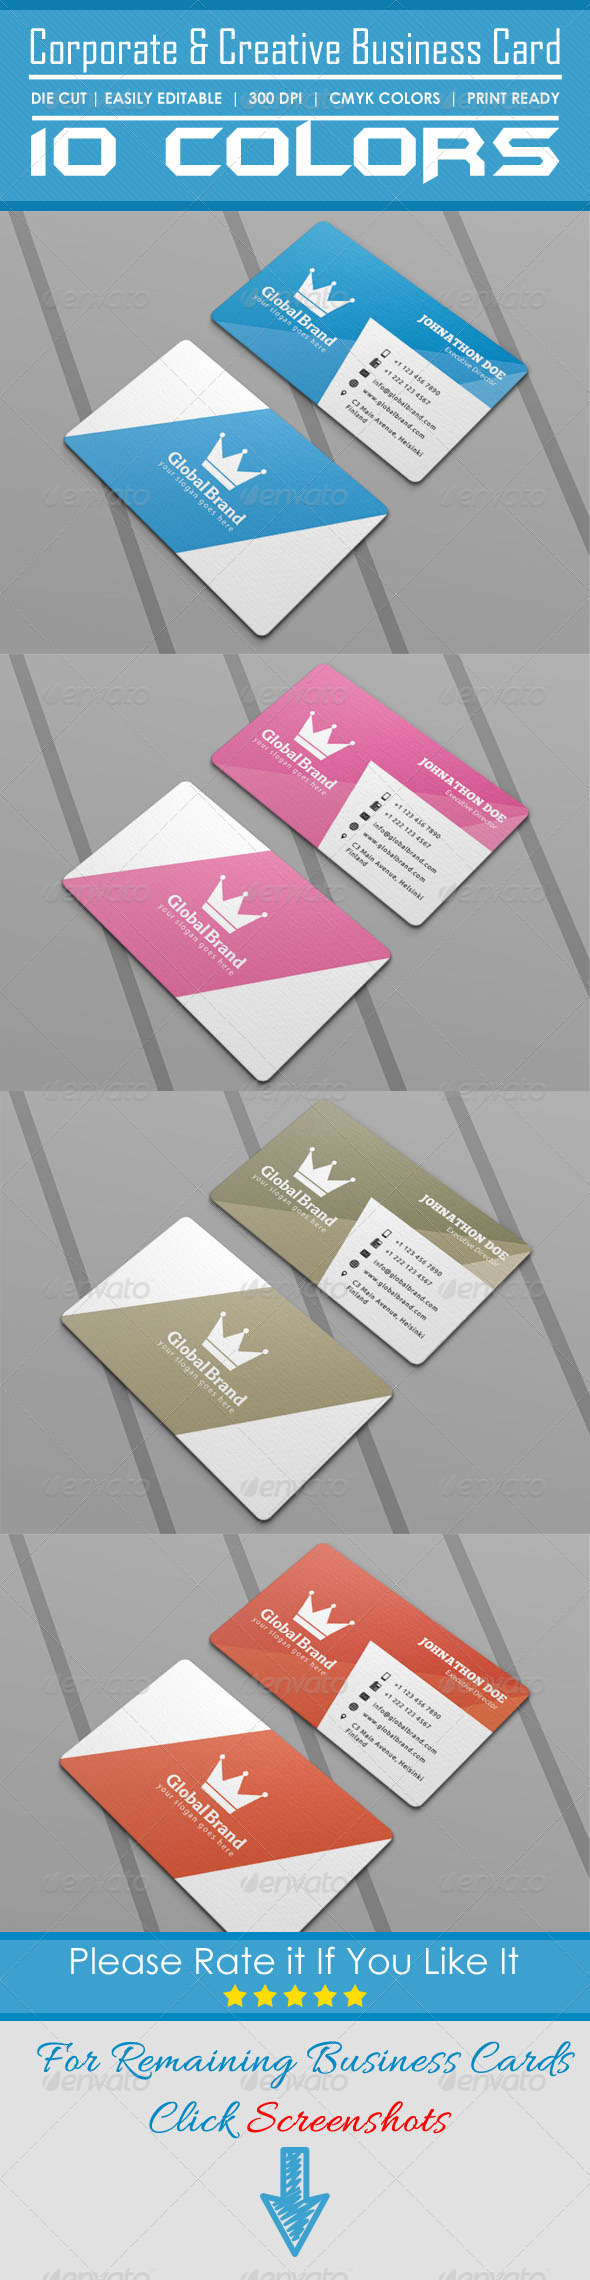 GraphicRiver Corporate & Creative Die Cut Business Card 5896675